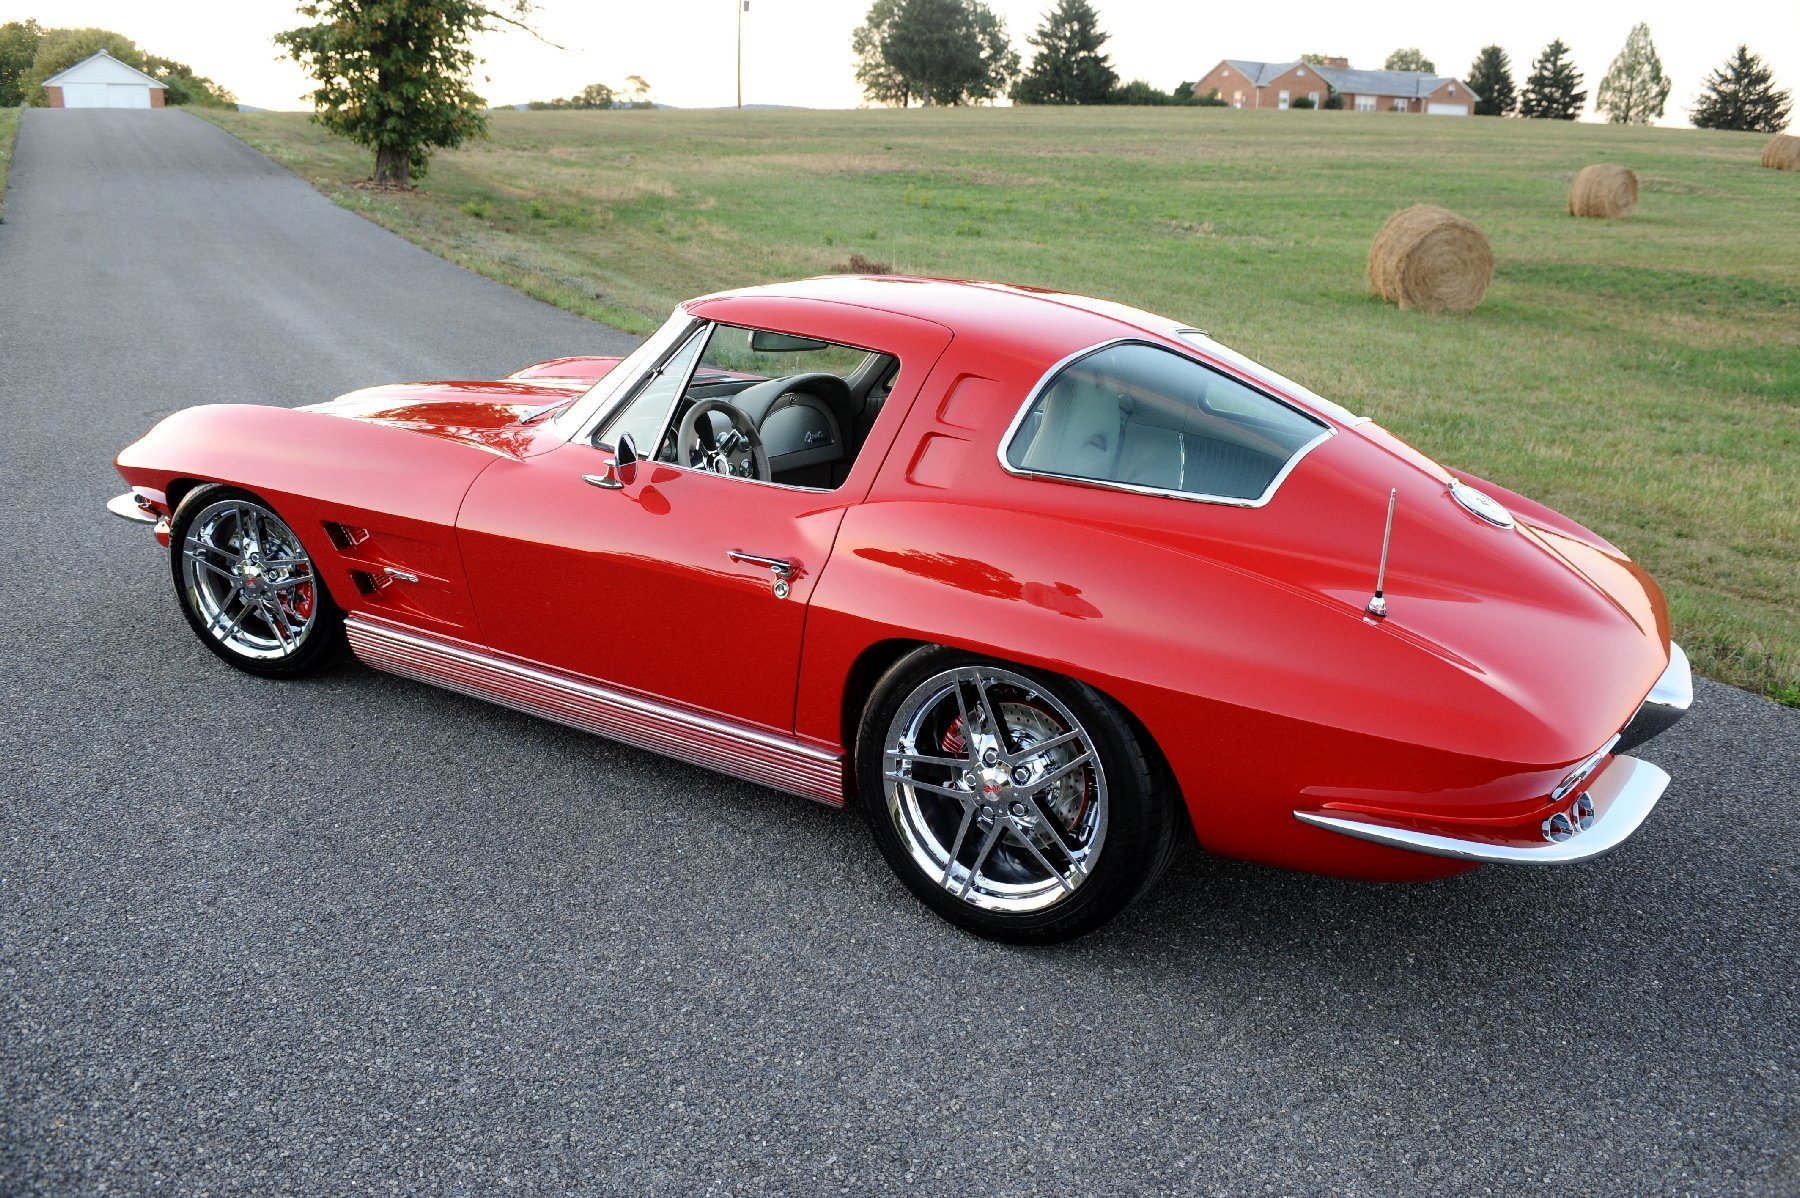 Happy 60th Birthday Chevy Corvette A Trip Down Memory Lane on 1972 chevy c10 for sale craigslist